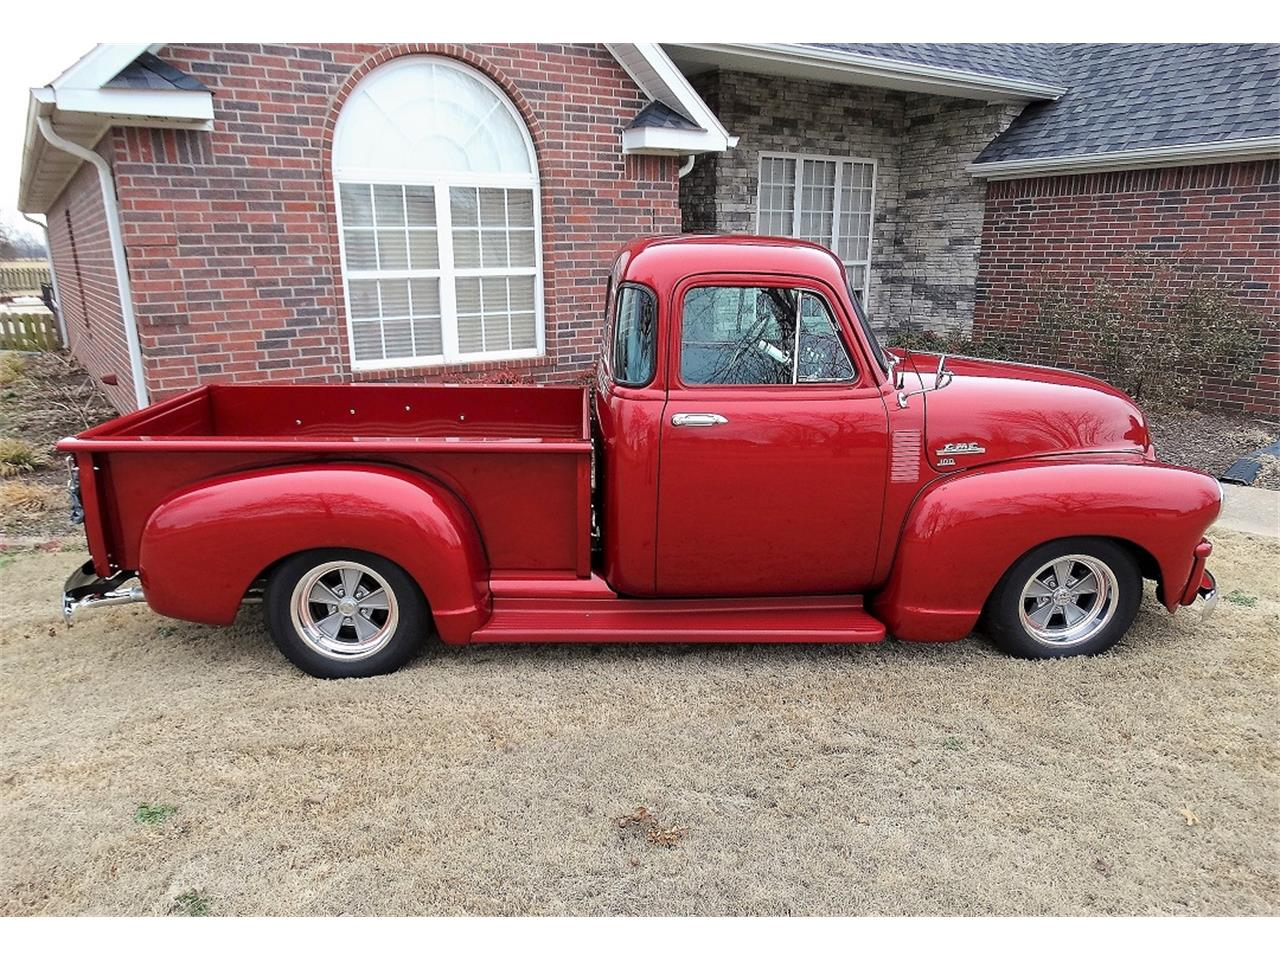 Large Picture of Classic '54 Pickup located in Springdale Arkansas - $54,900.00 Offered by a Private Seller - N8MG